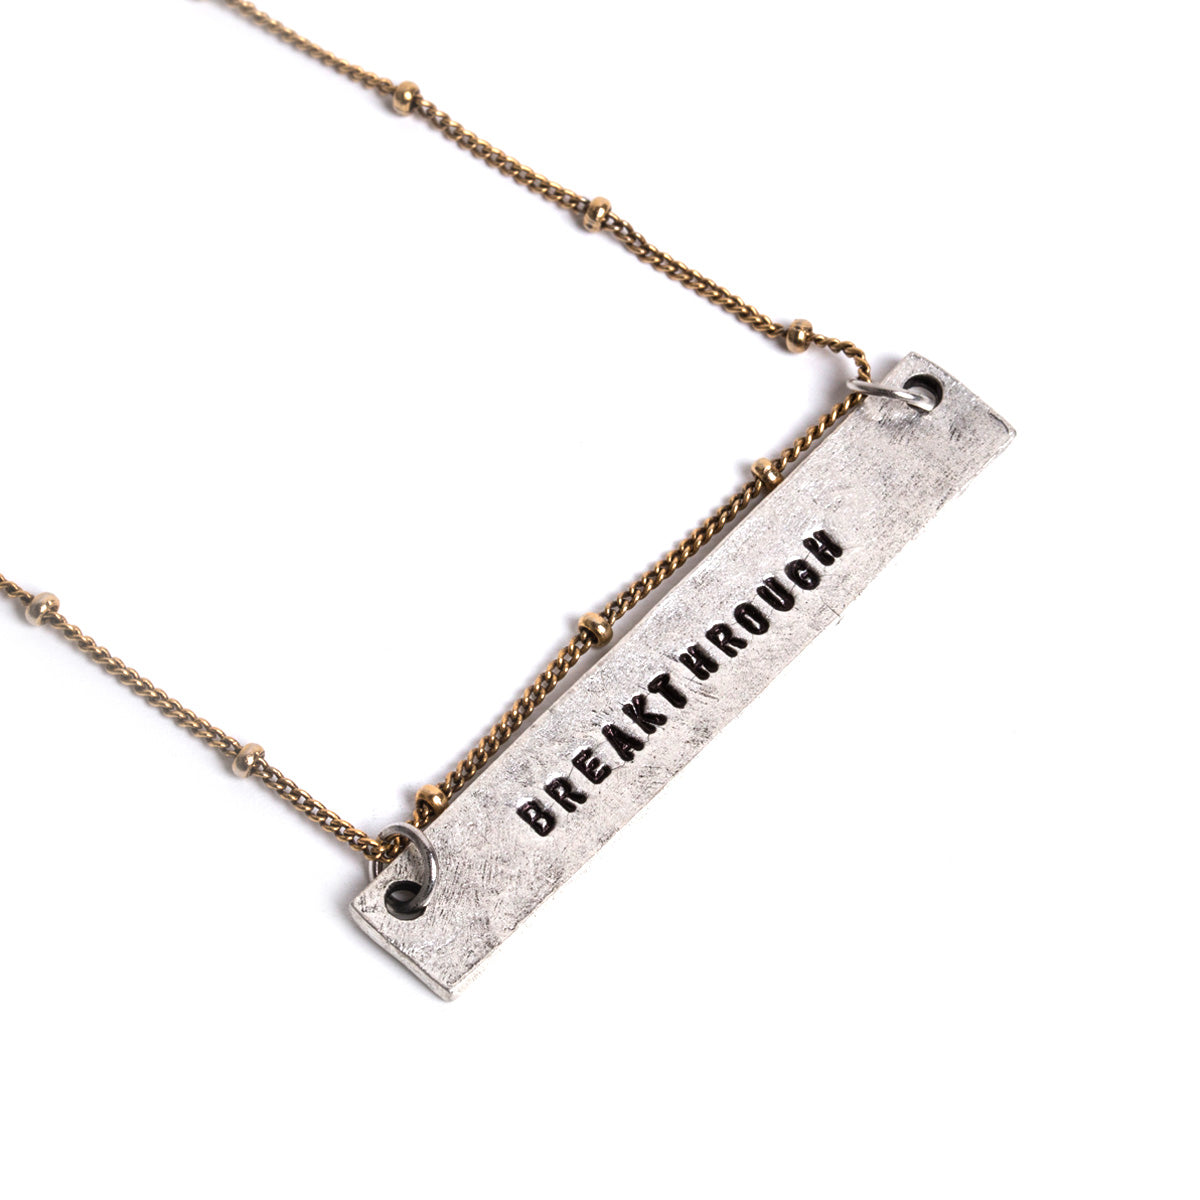 Breakthrough Gilead Necklace